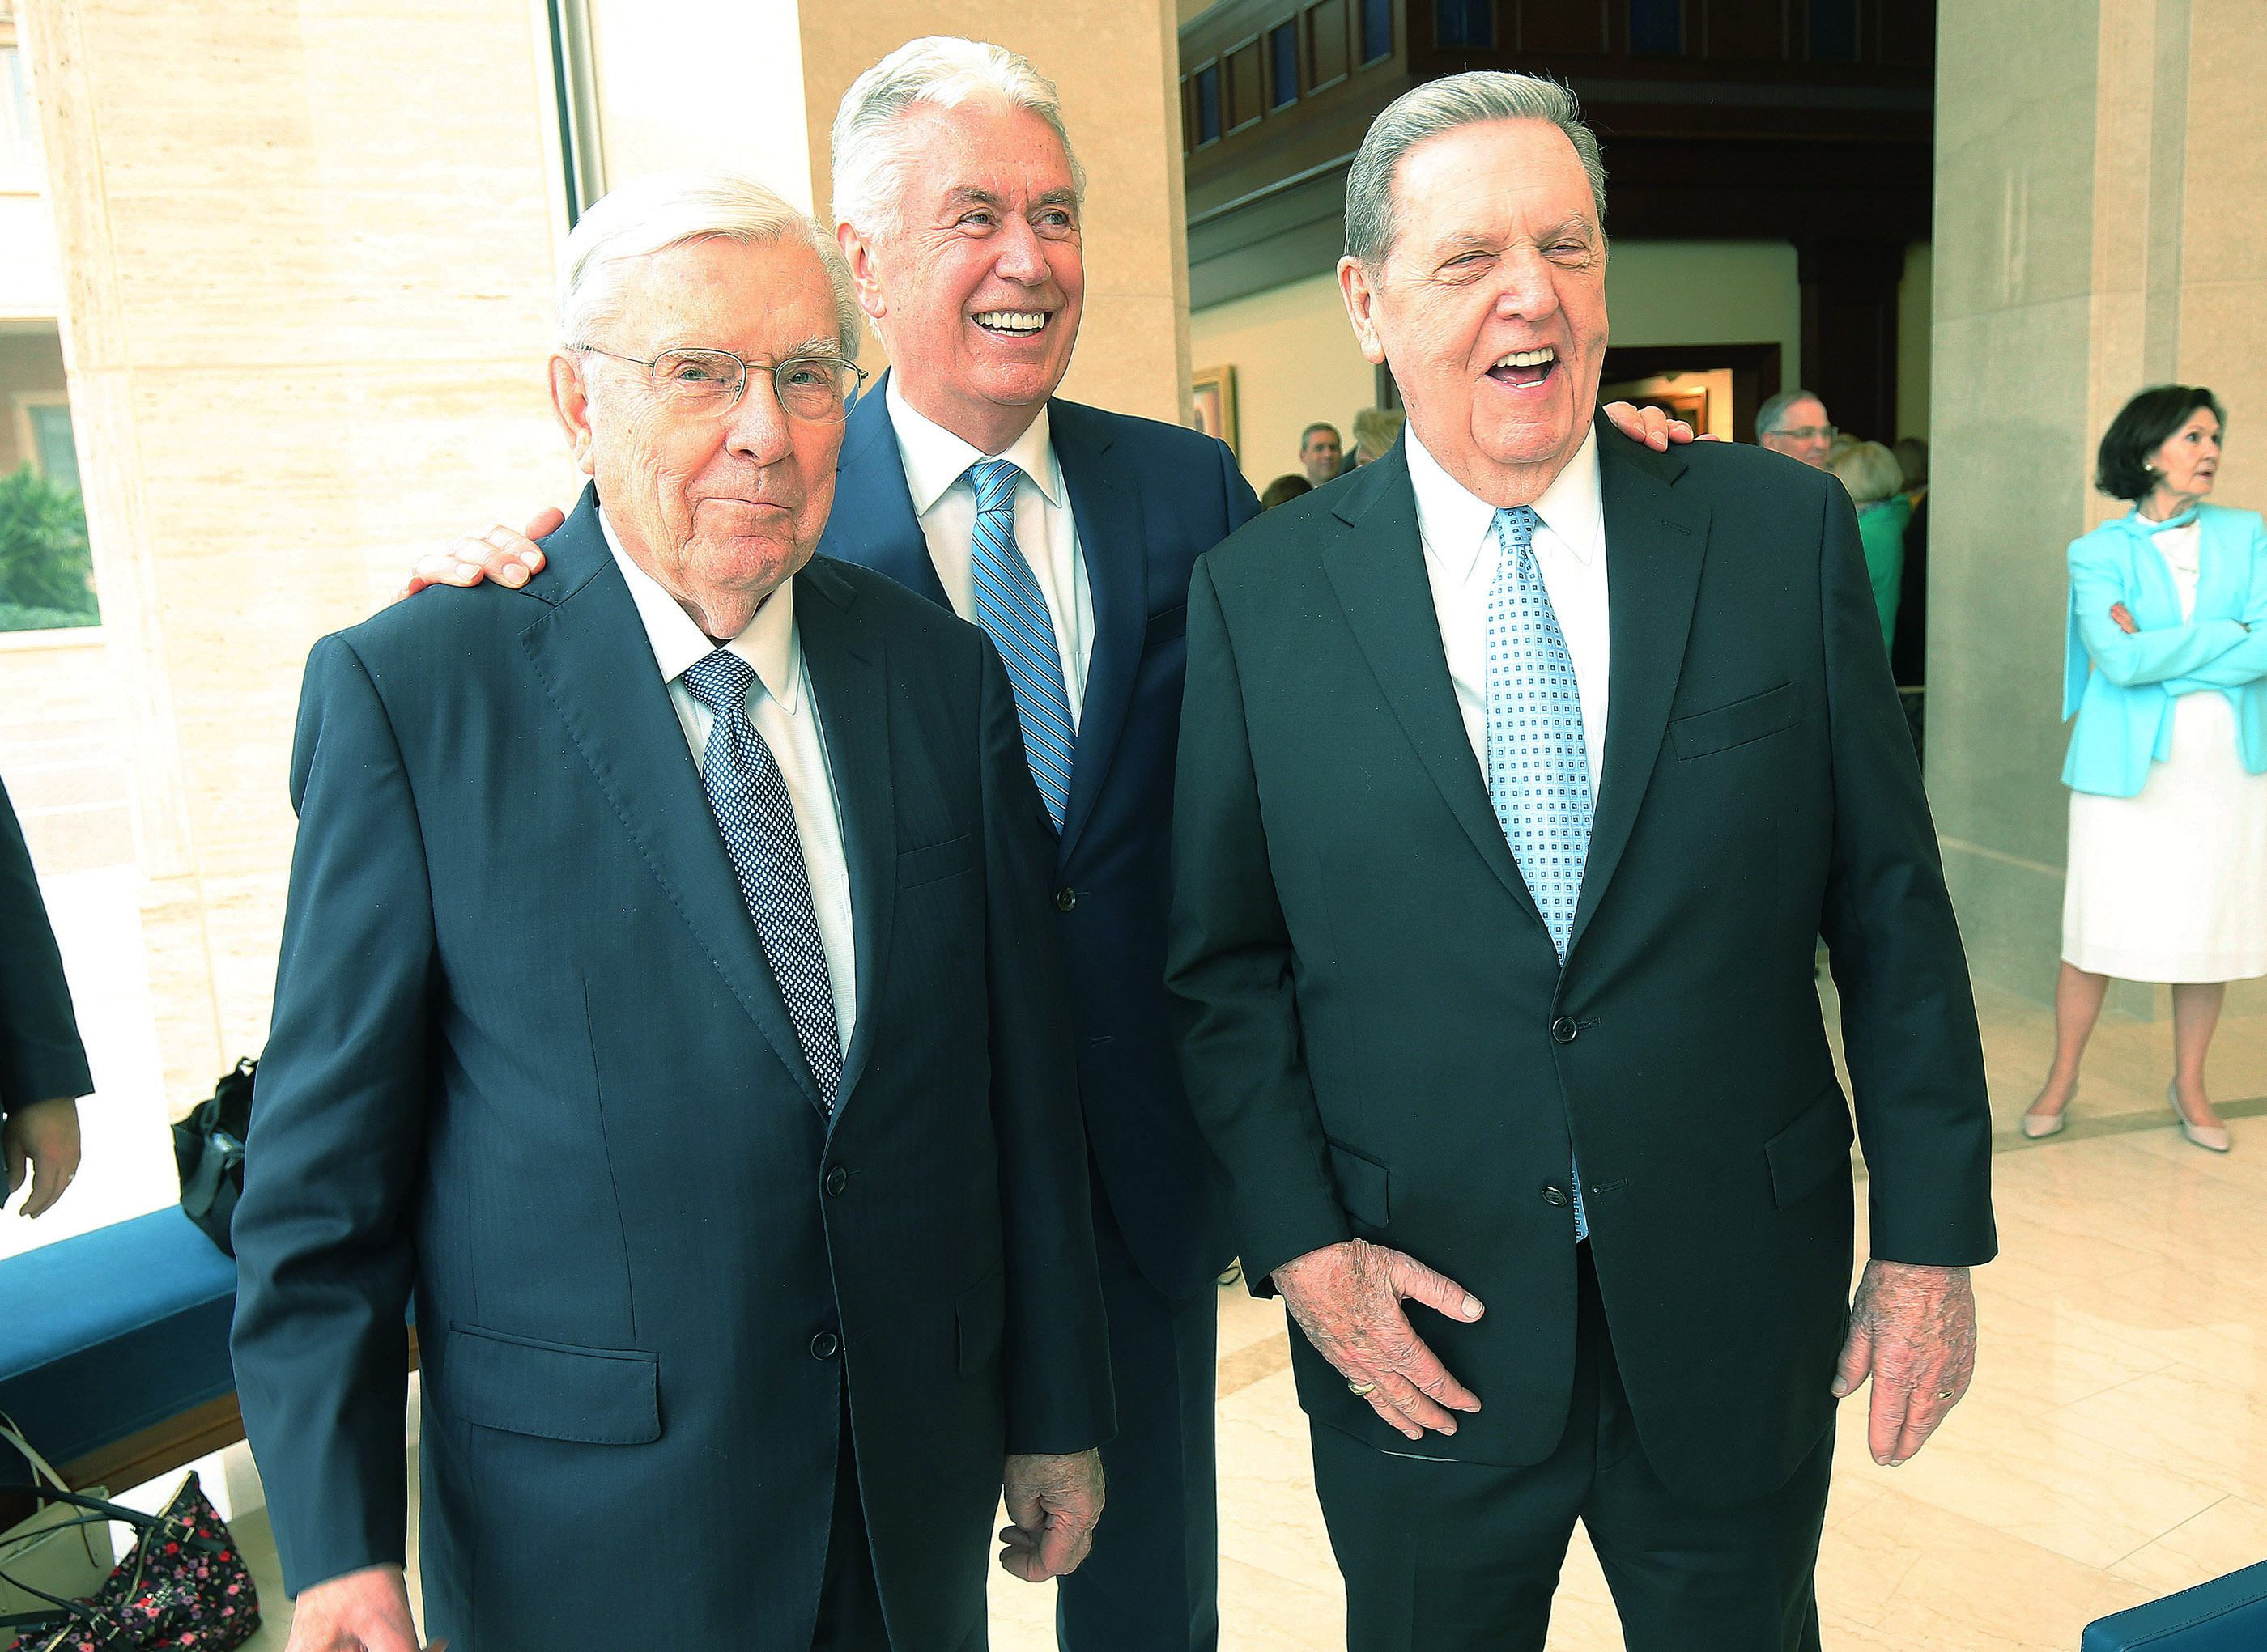 President M. Russell Ballard, Elder Dieter F. Uchtdorf and Elder Jeffrey R. Holland, members of the Quorum of the Twelve Apostles of The Church of Jesus Christ of Latter-day Saints, share a laugh in the Rome Italy Temple visitors' center in Rome, Italy on Monday, March 11, 2019.